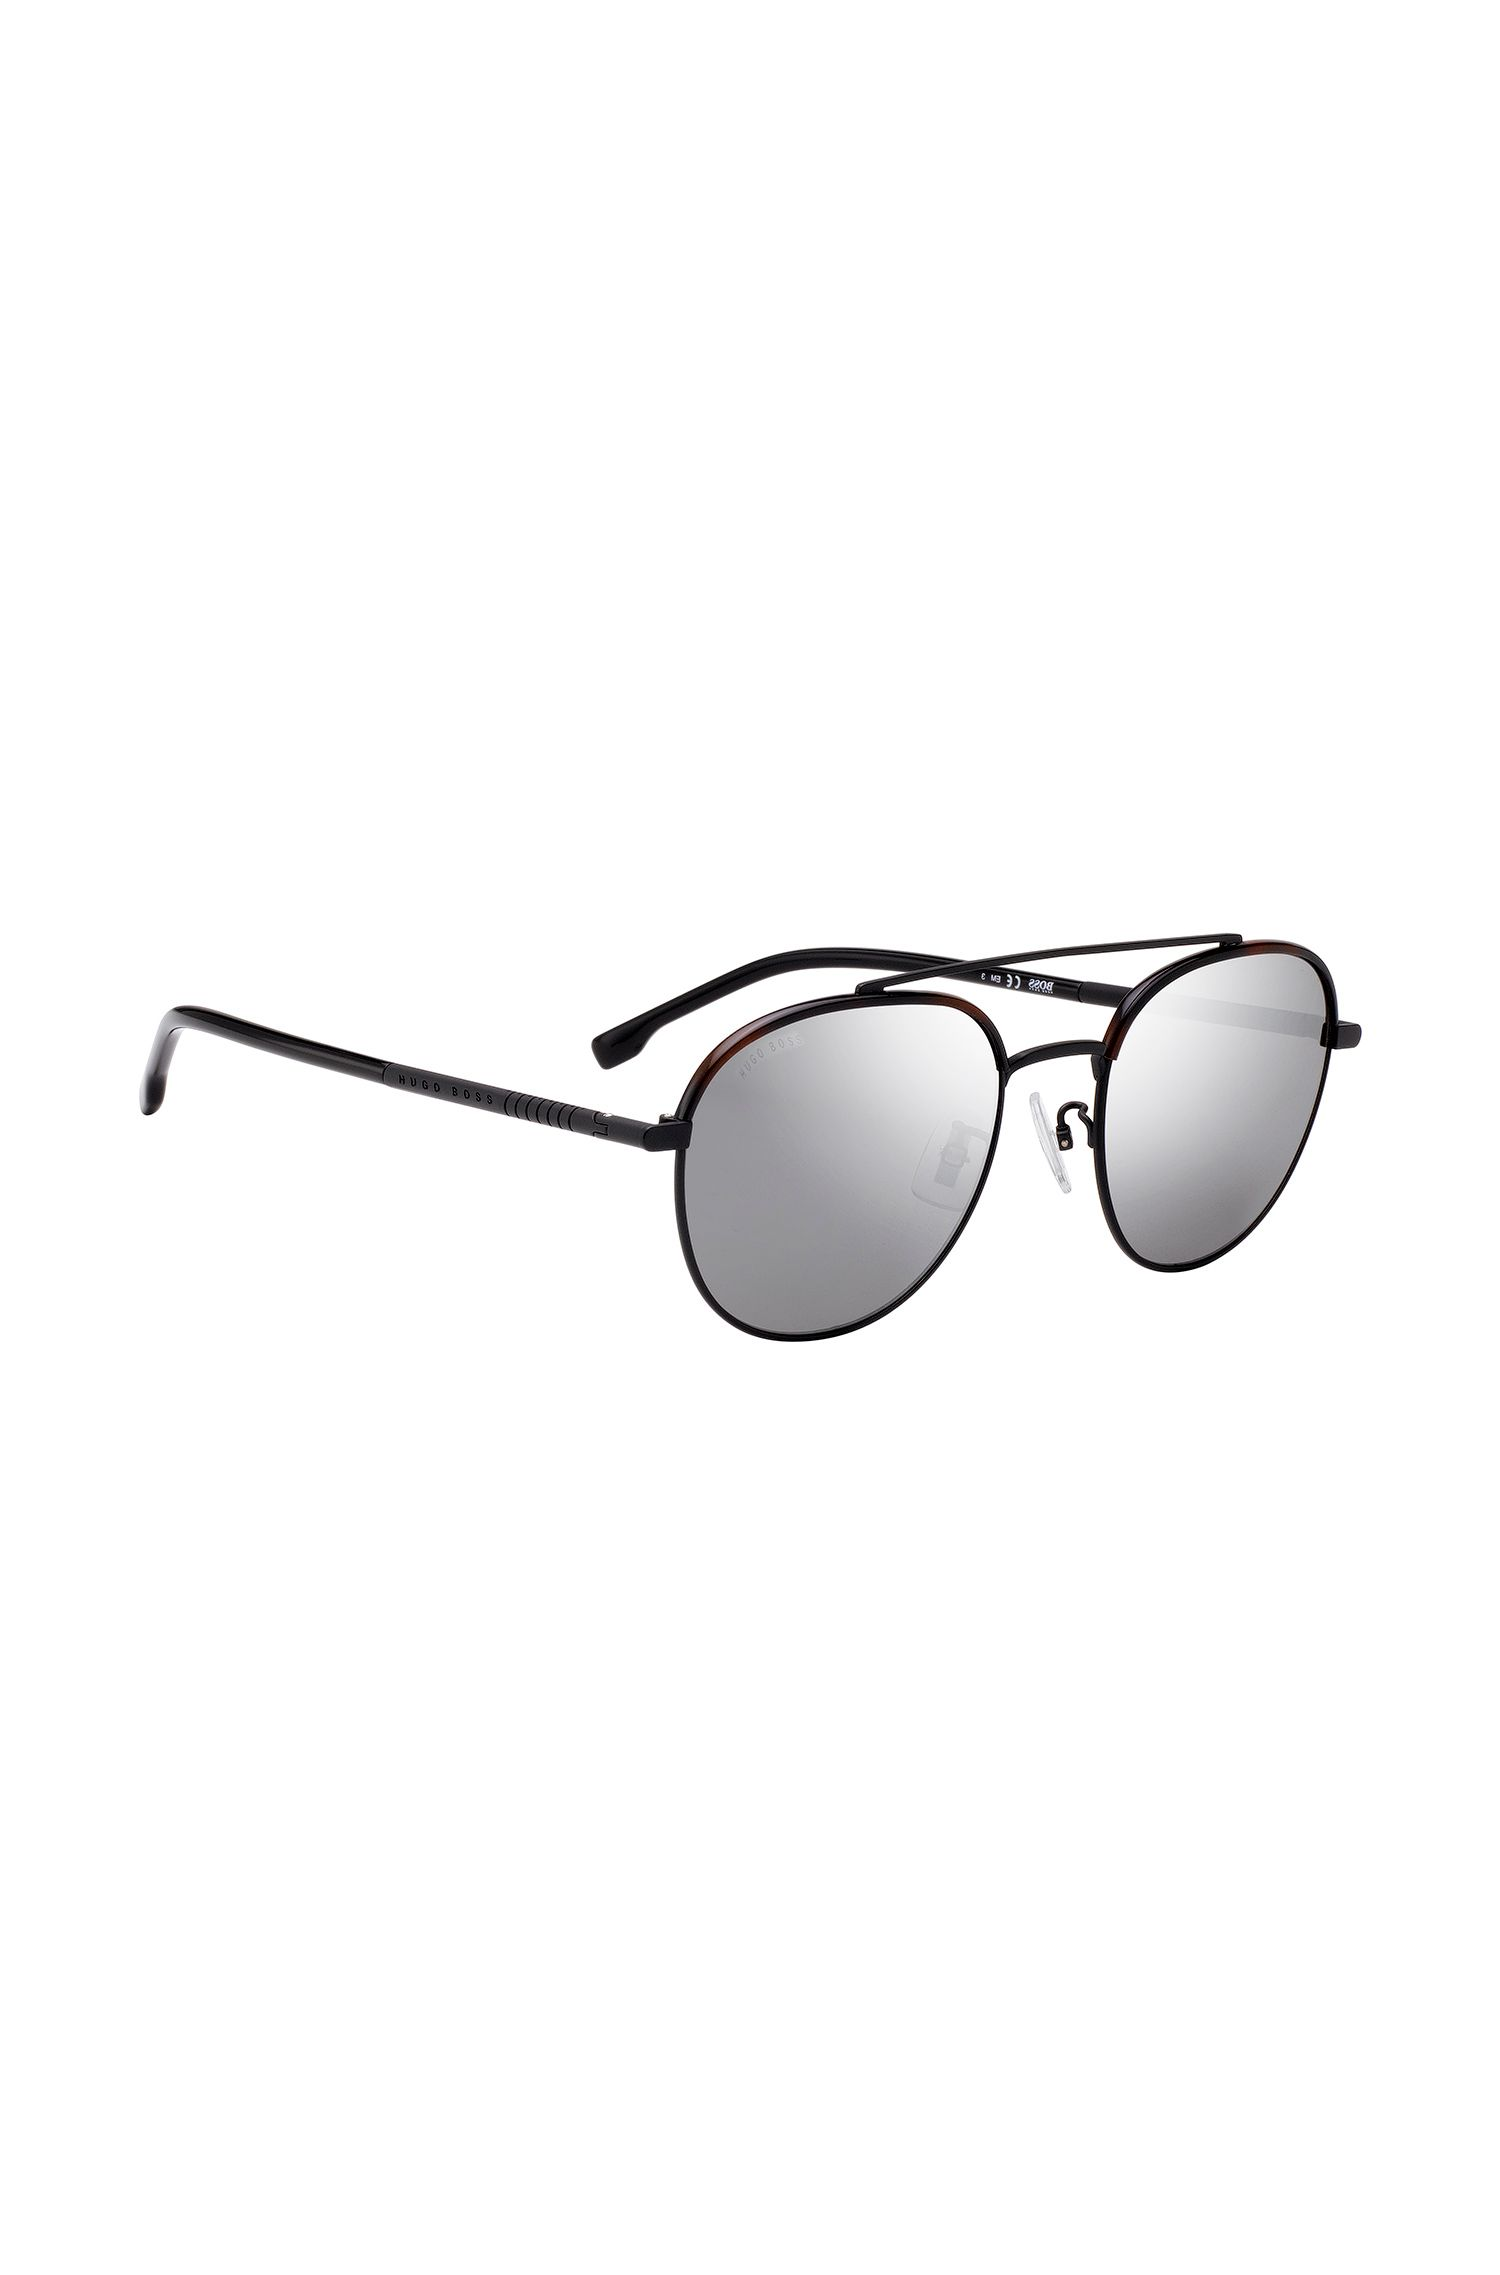 Double-bridge titanium sunglasses with havana acetate details, Black